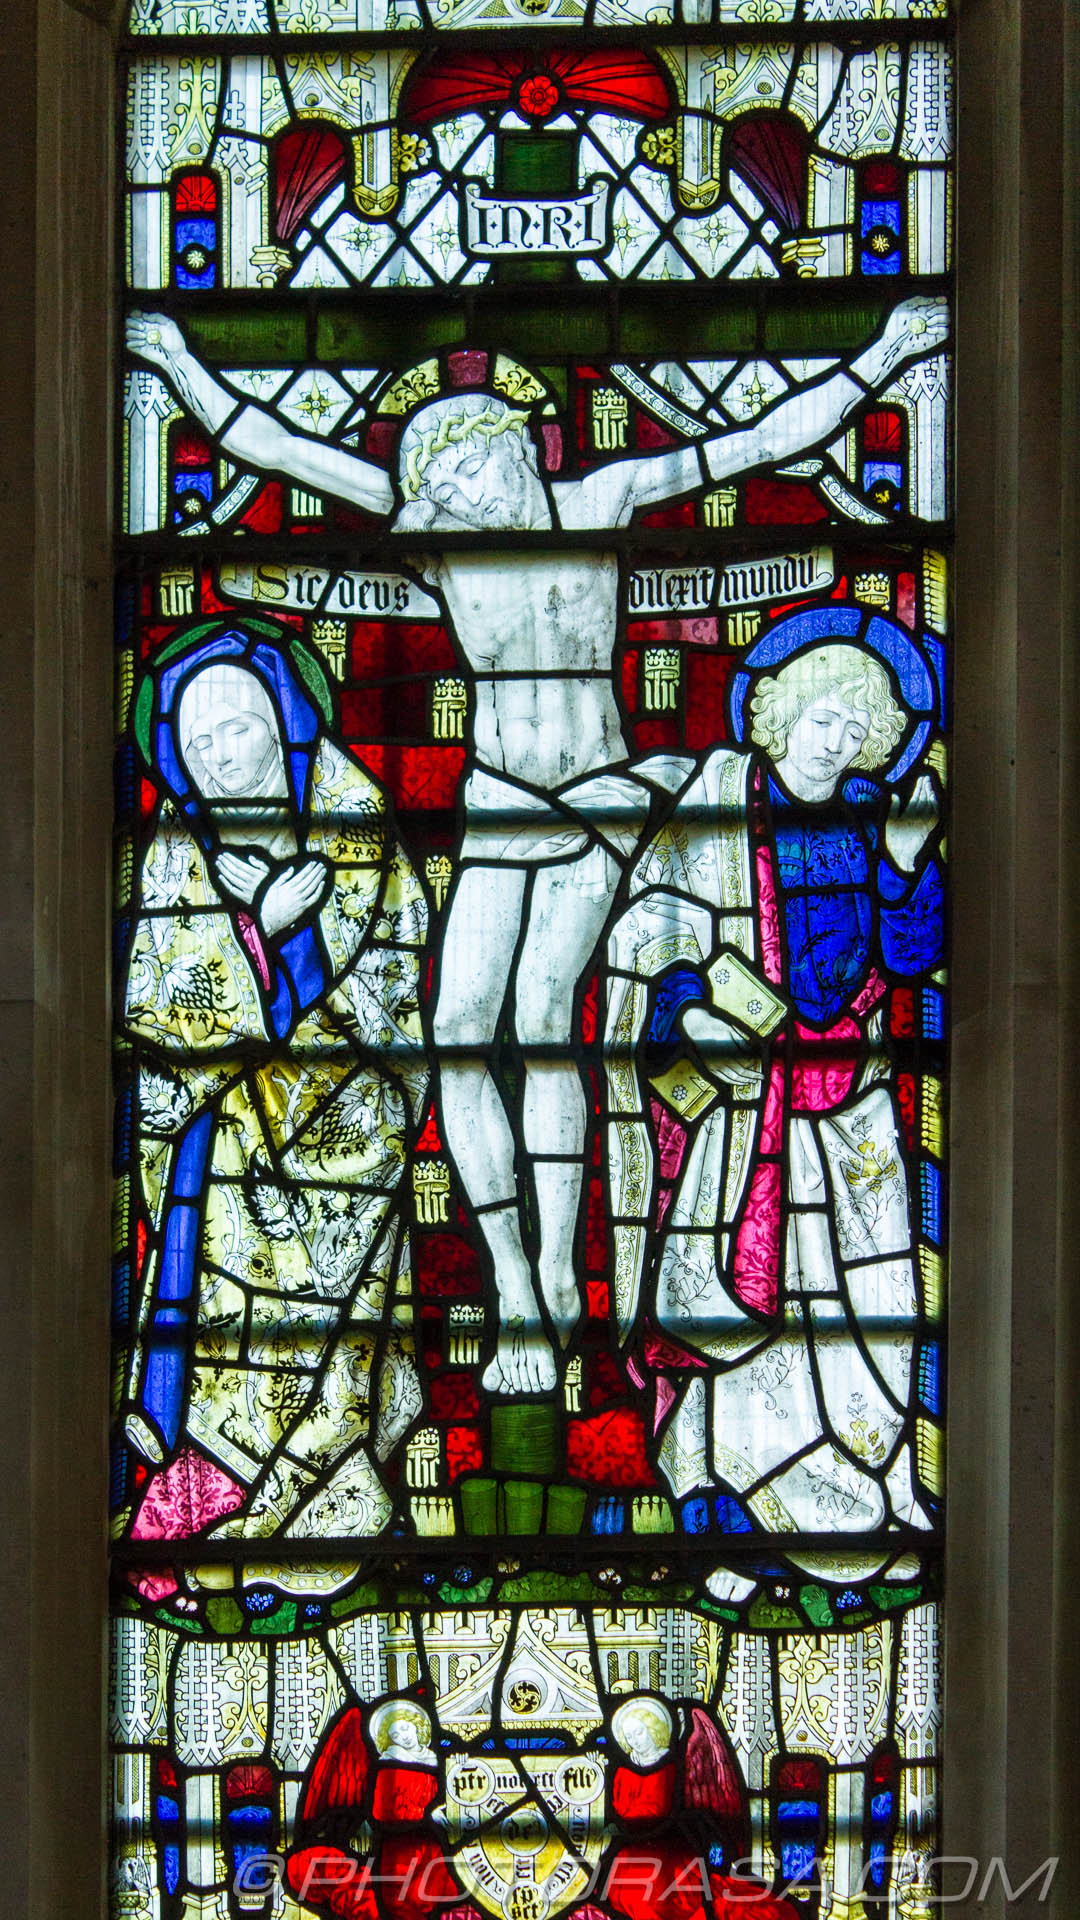 http://photorasa.com/parish-church-st-peter-st-paul-headcorn/chancel-window-detail-showing-jesus-on-the-cross-with-mary-and-b/